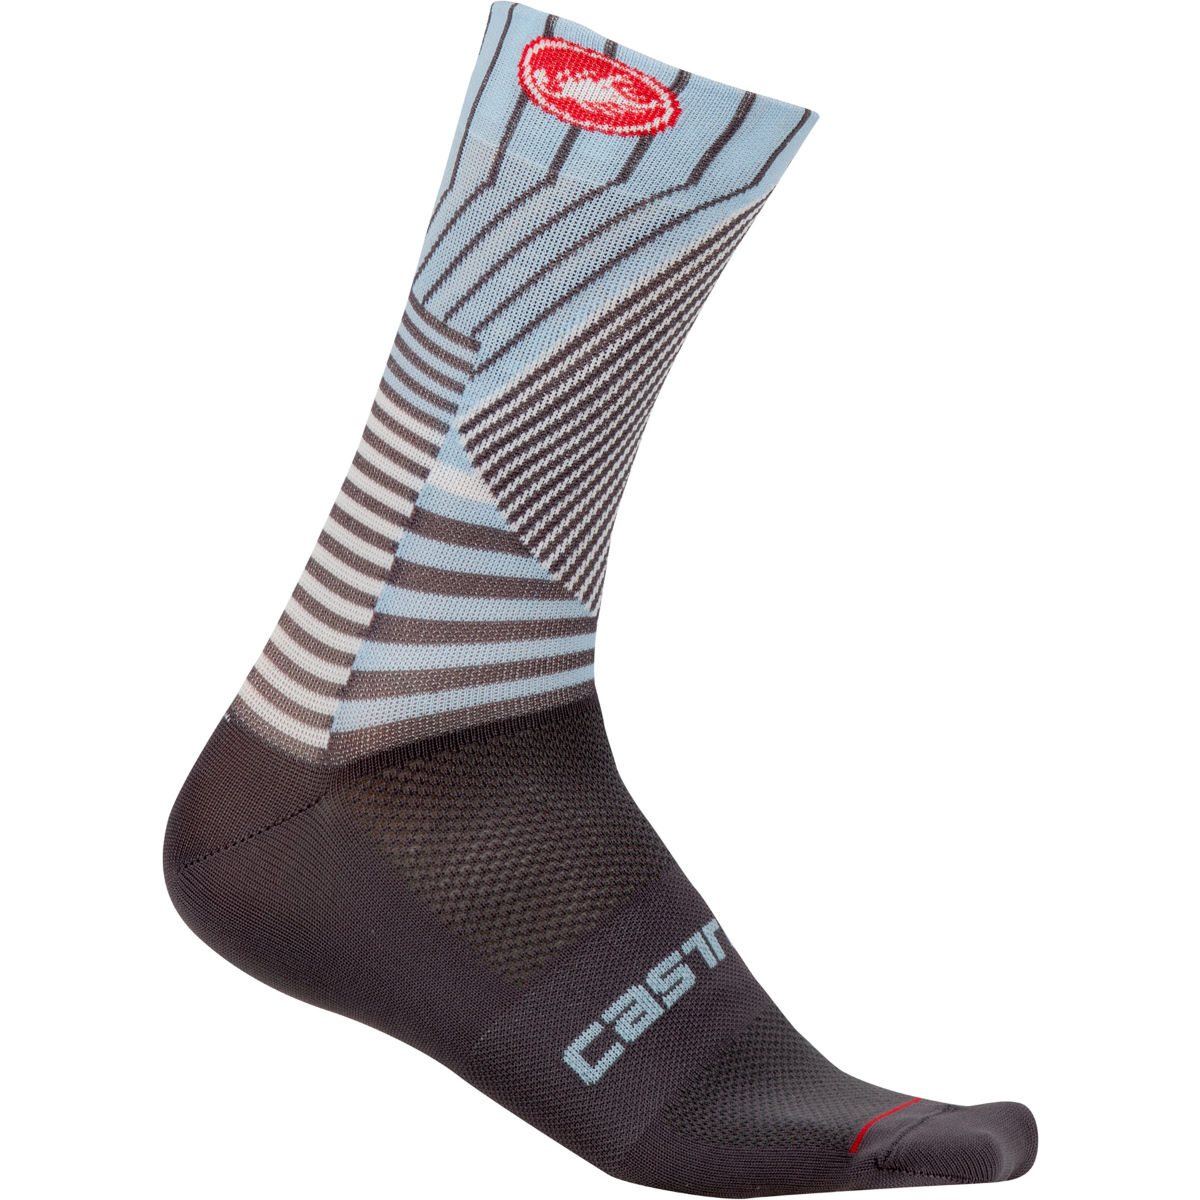 ComprarCalcetines Castelli Pro Mesh 15 - Calcetines